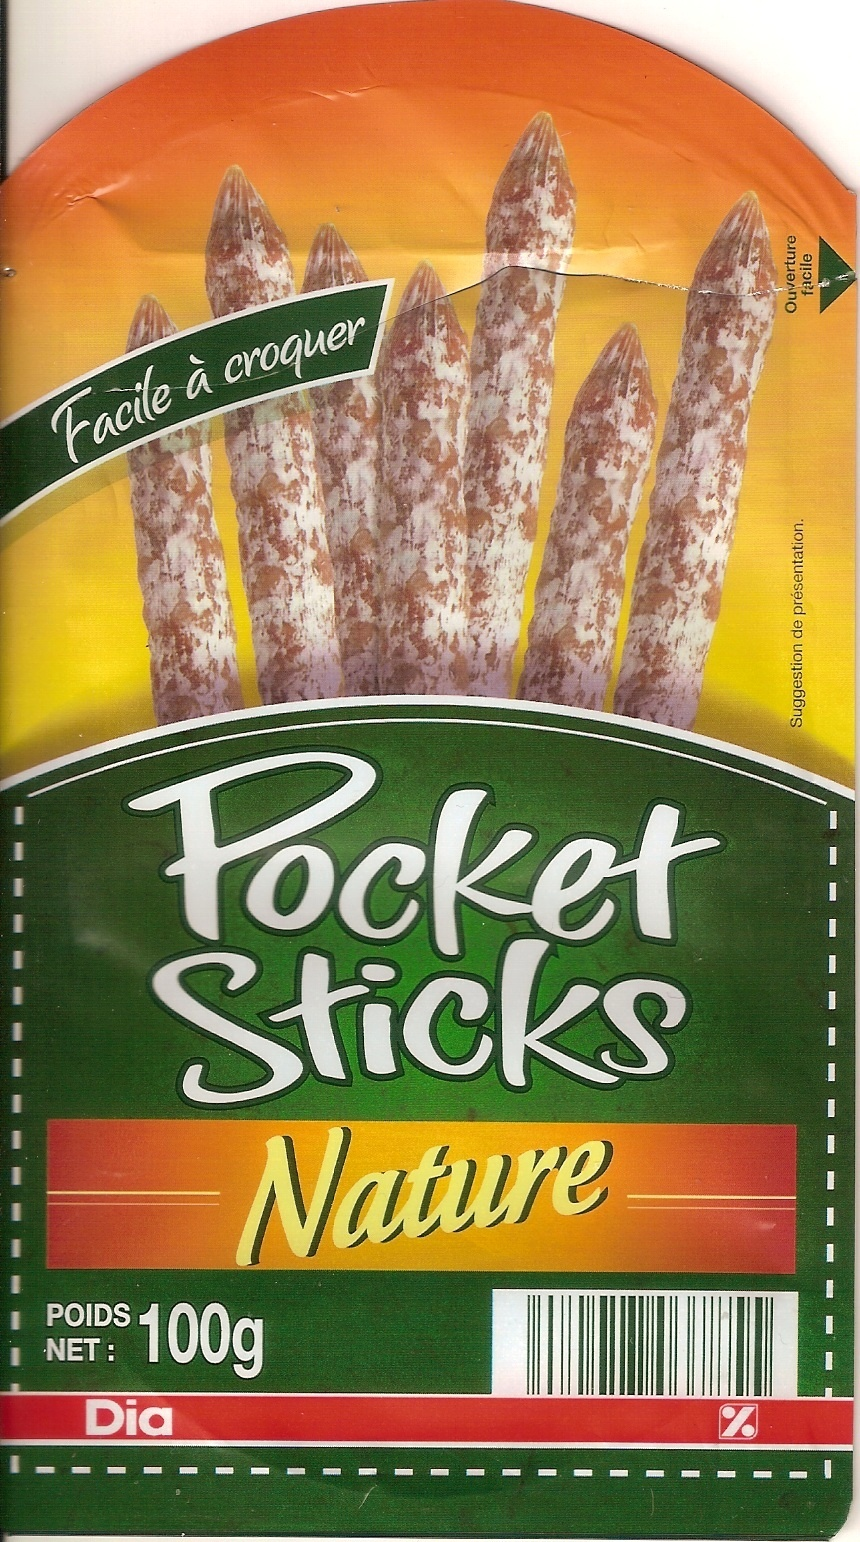 Pocket Sticks Nature - Produit